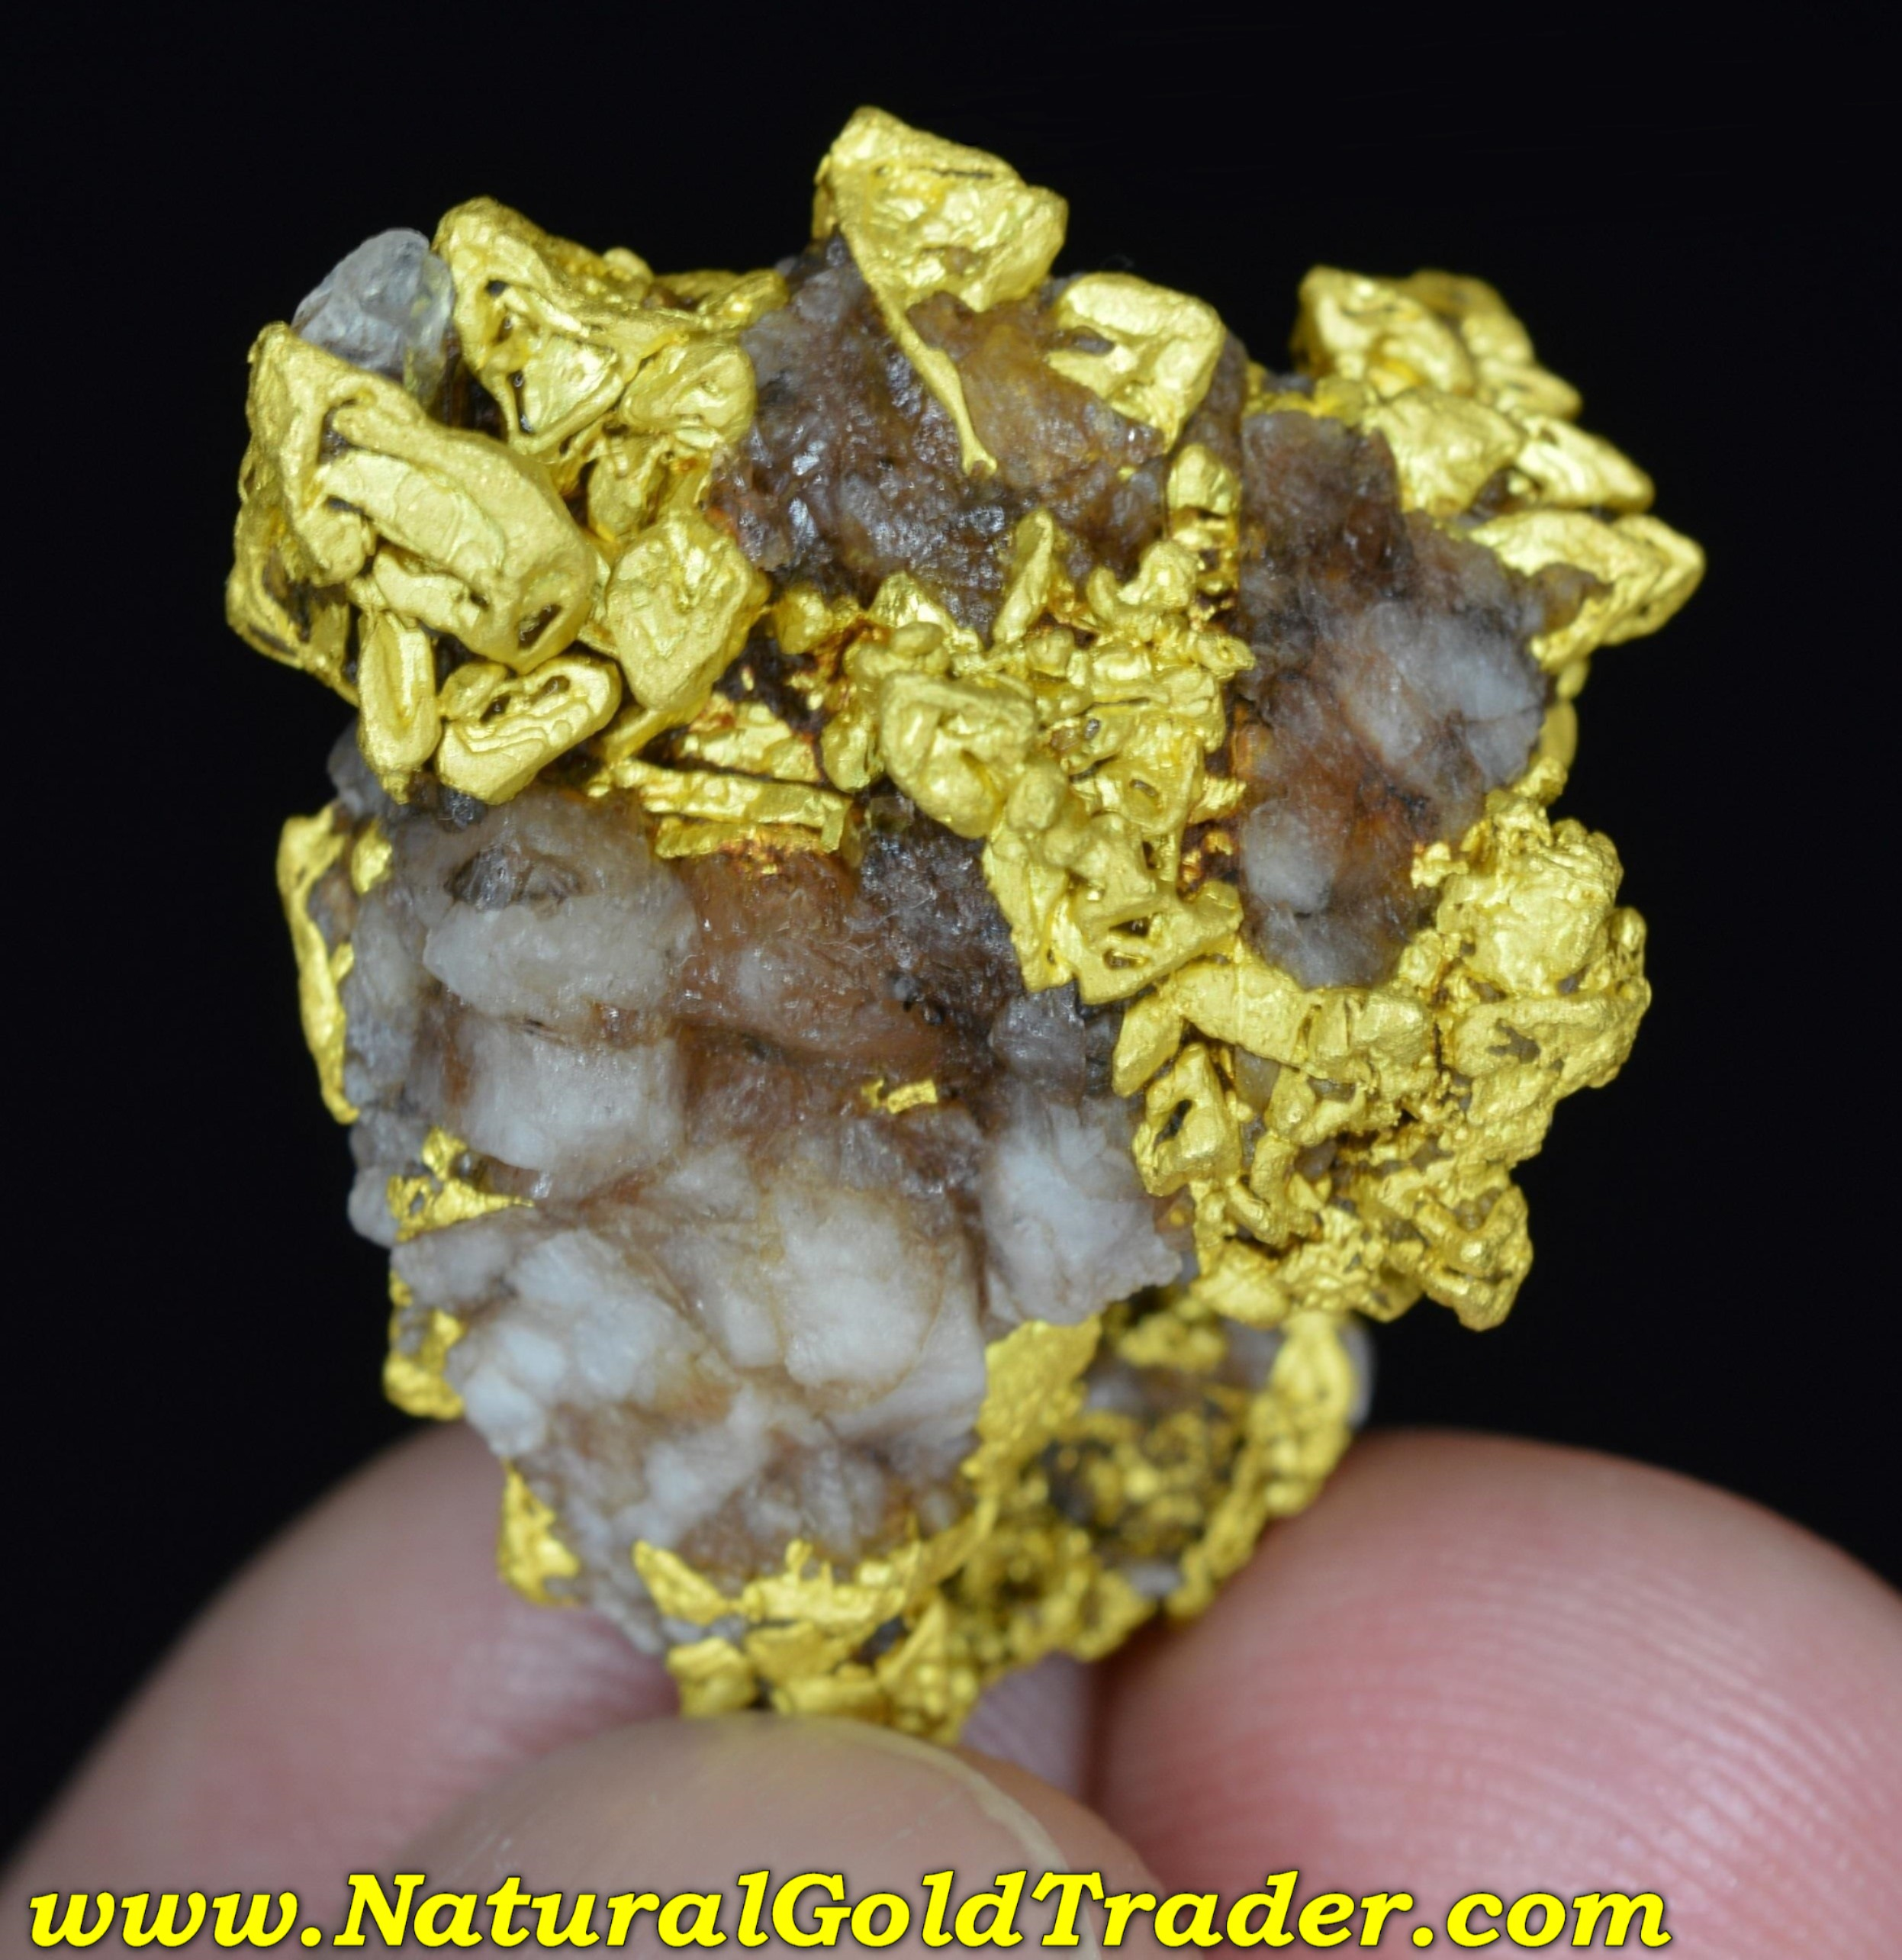 California Gold & Quartz High Grade Specimen